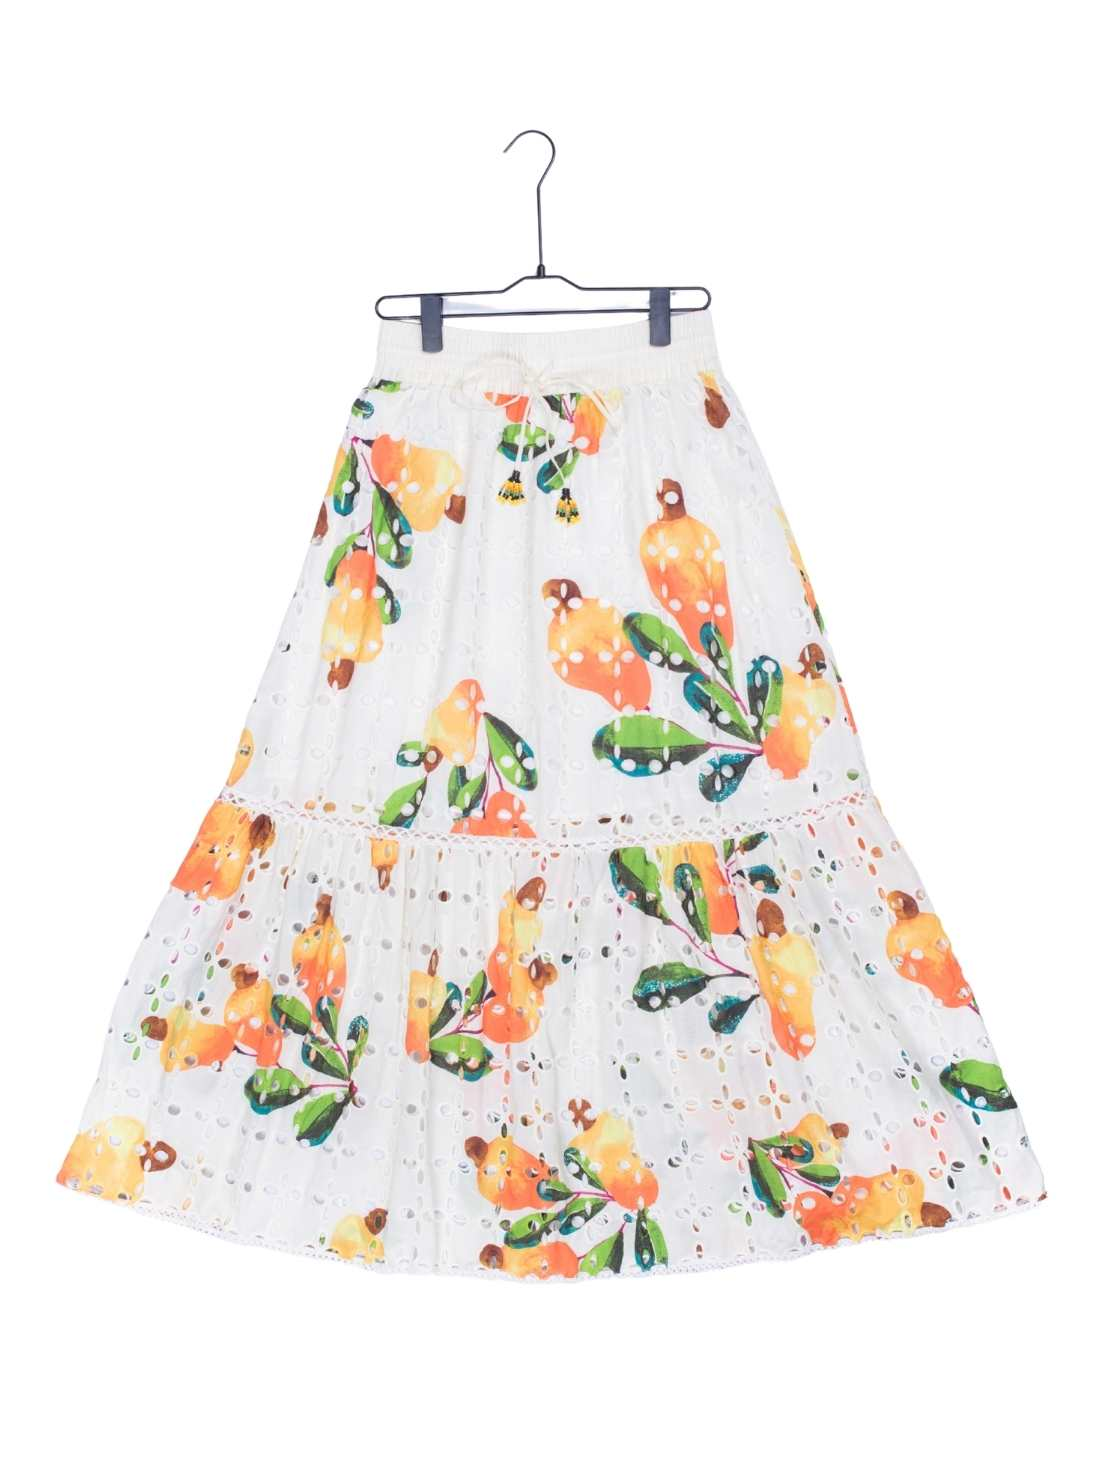 Ladies Cotton Embroidery and Print Skirt